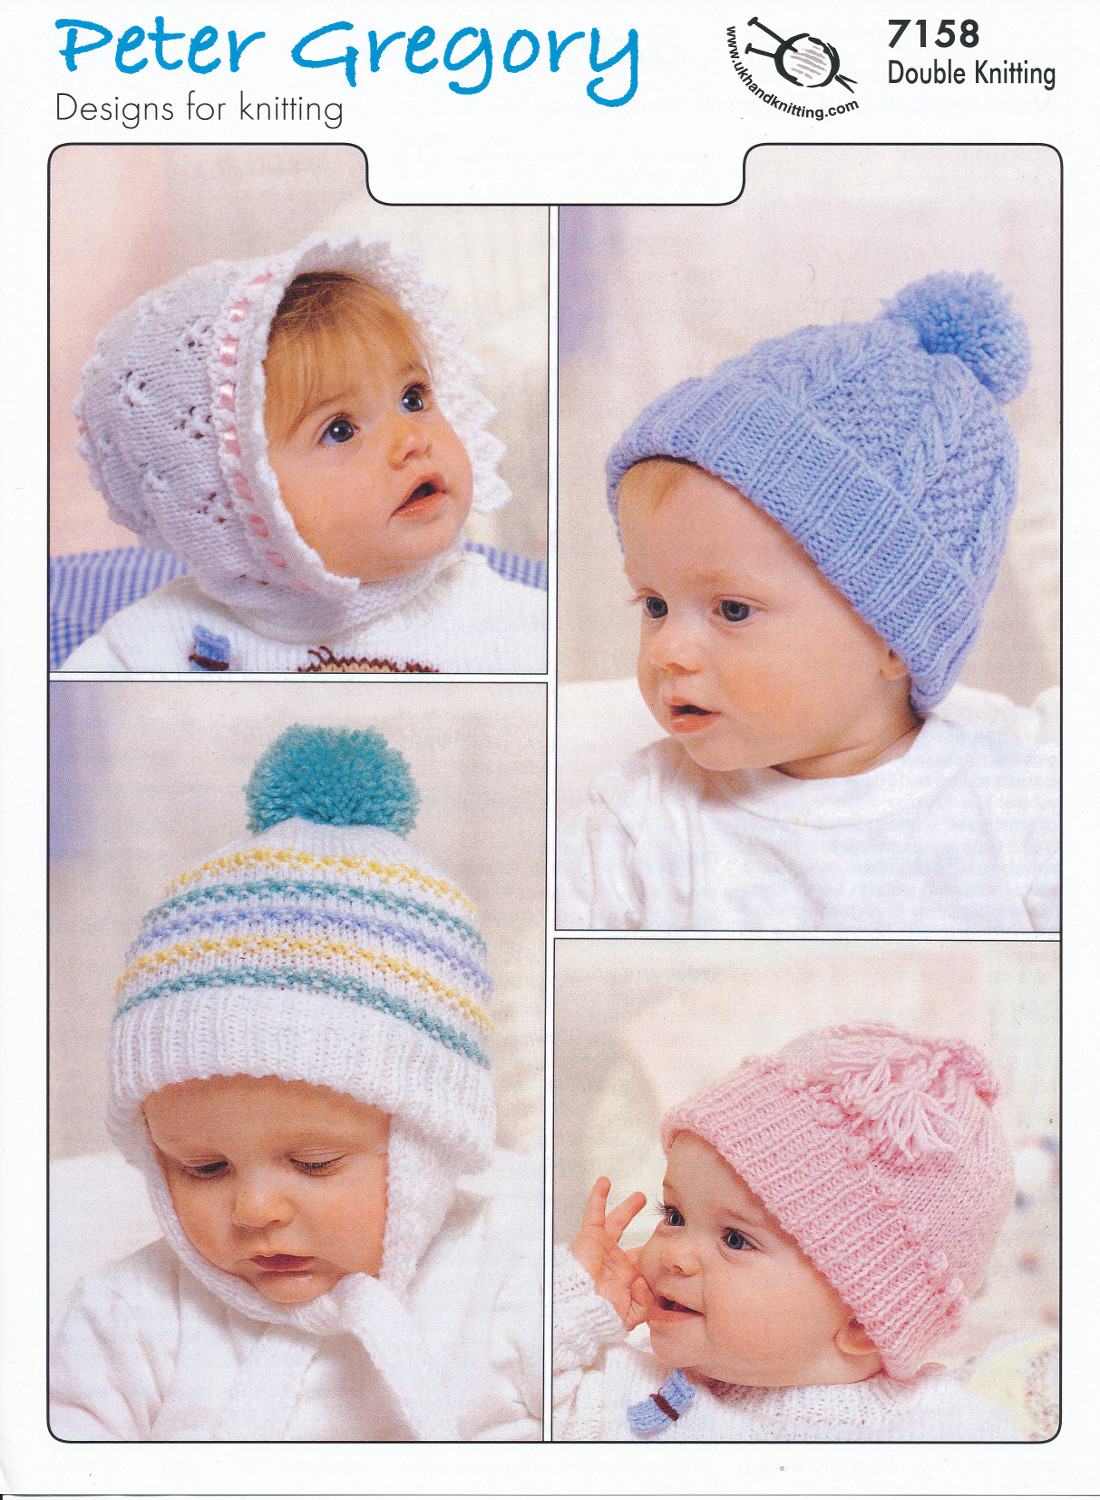 Knitting Patterns Baby Hat Details About Ba Double Knitting Pattern Ba Accessories Hats Bonnets Peter Gregory Dk 7158